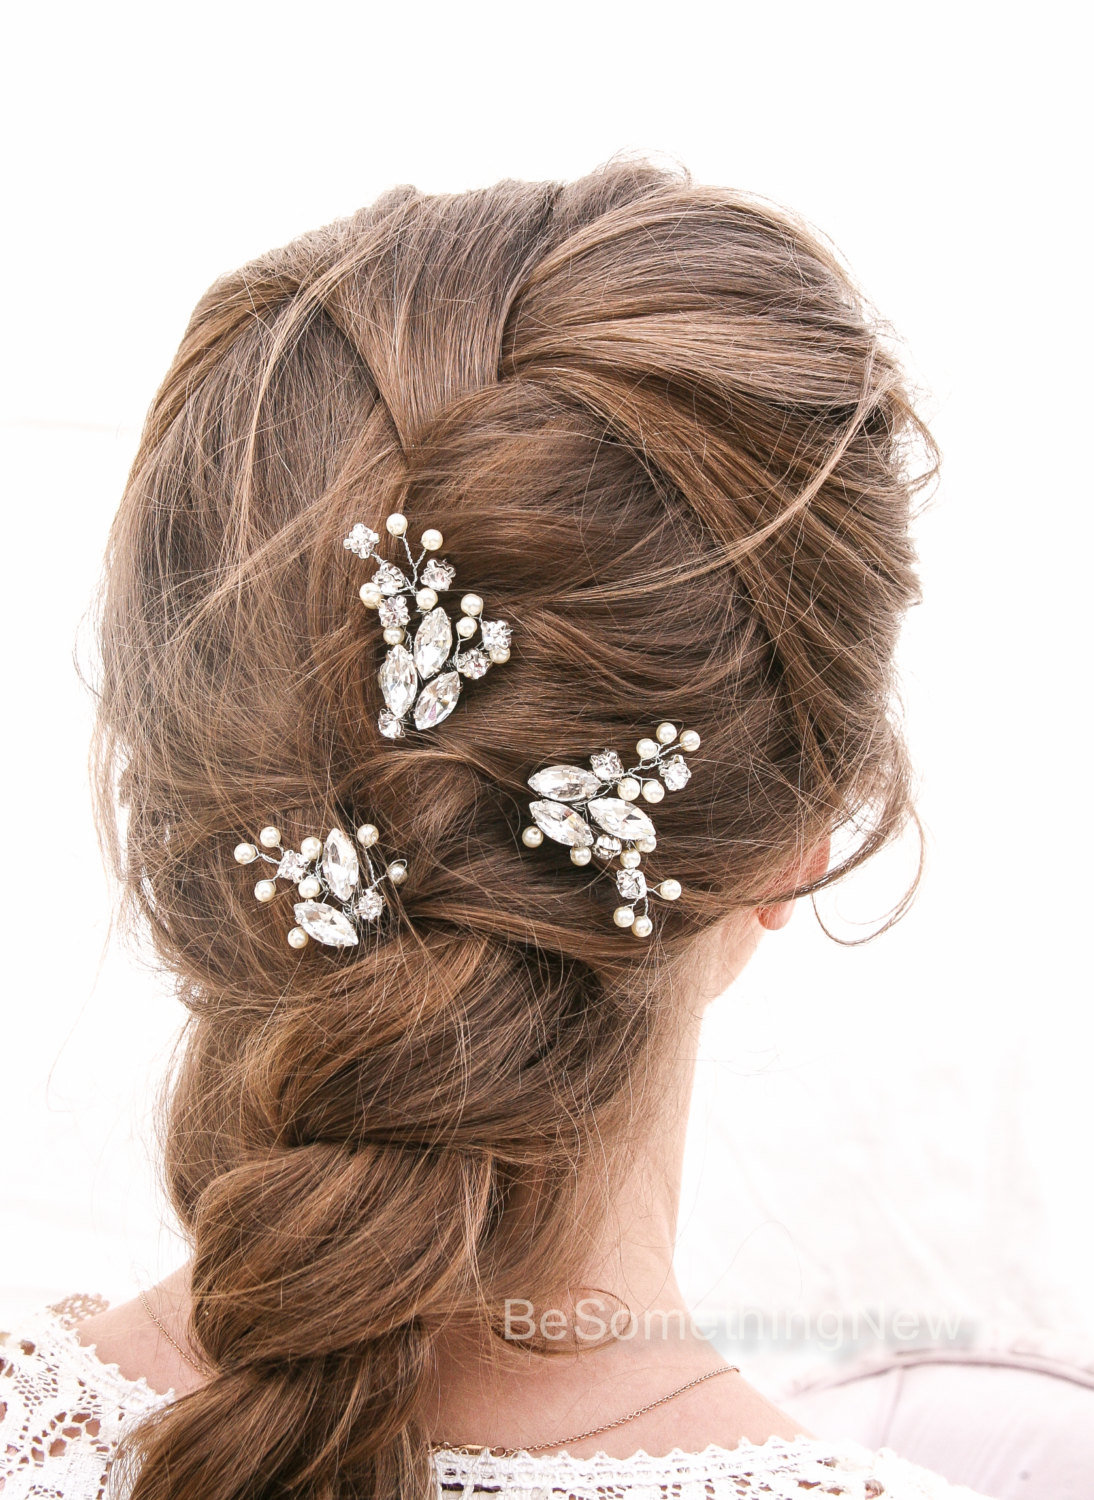 Rhinestone And Pearl Beaded Hair Pin Set Decorative Wedding Hair Accessories U2013 Be Something New